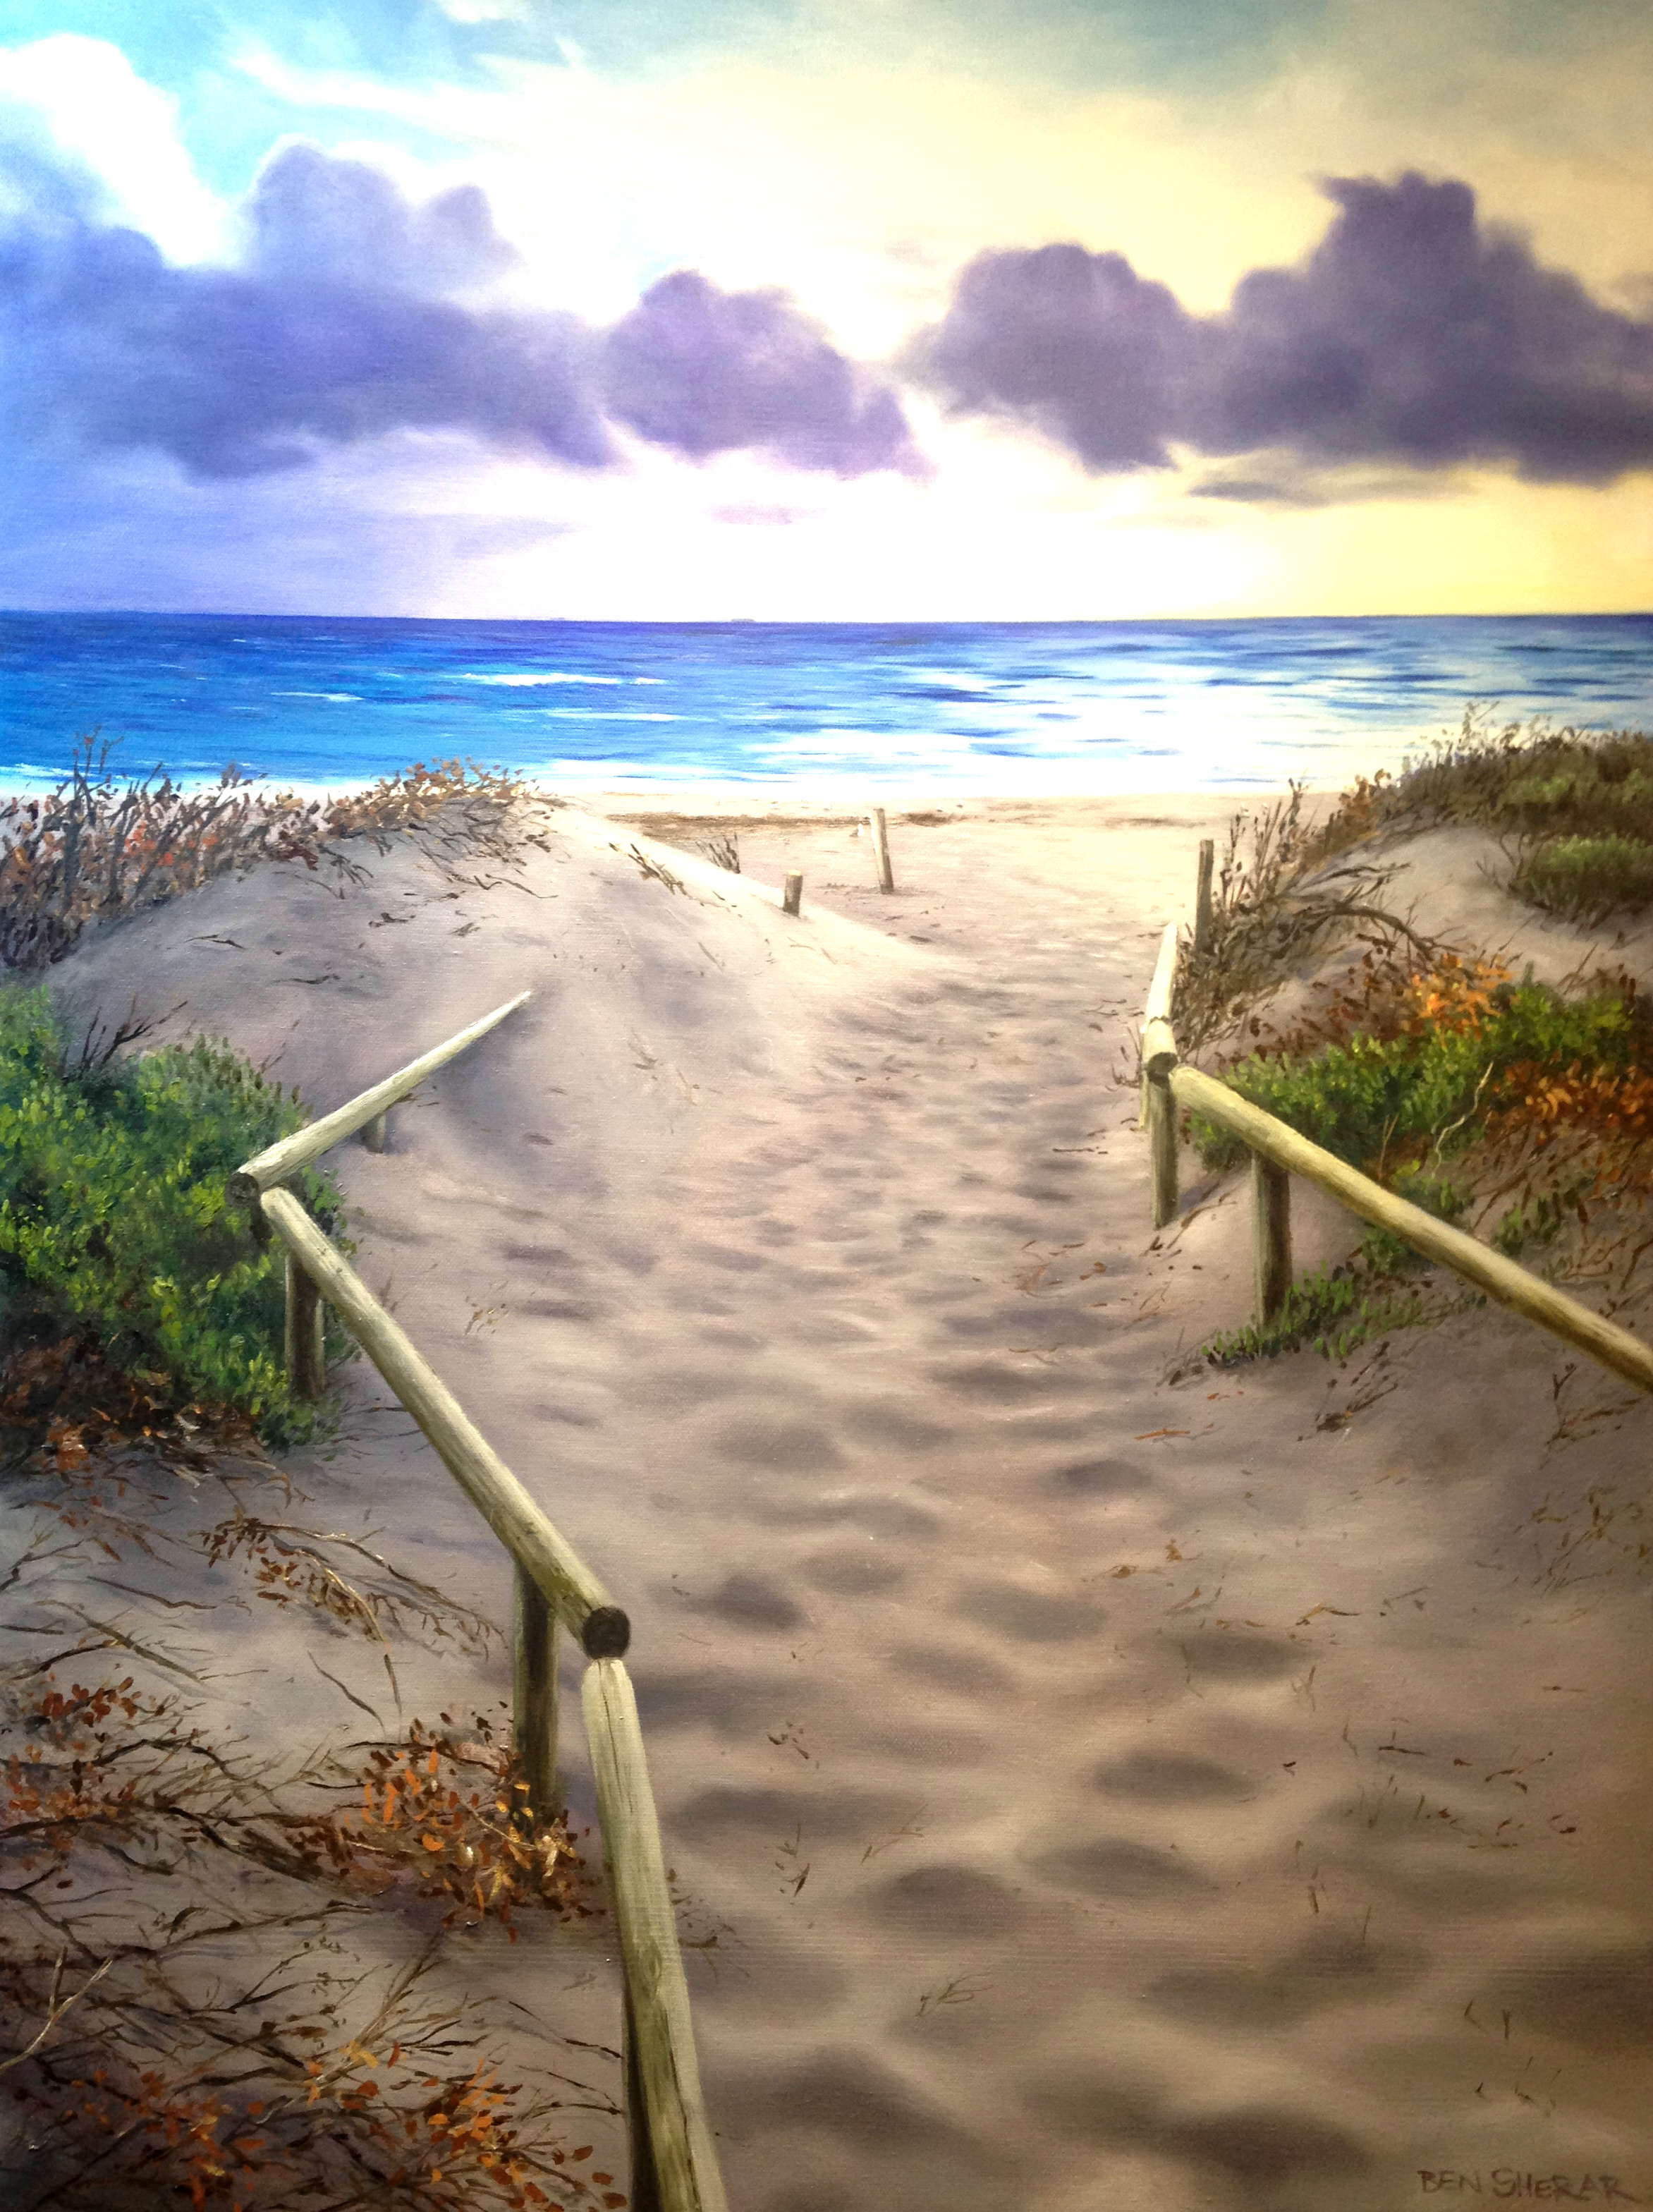 Original Oil Painting on canvas by Ben Sherar of South Beach in South Fremantle